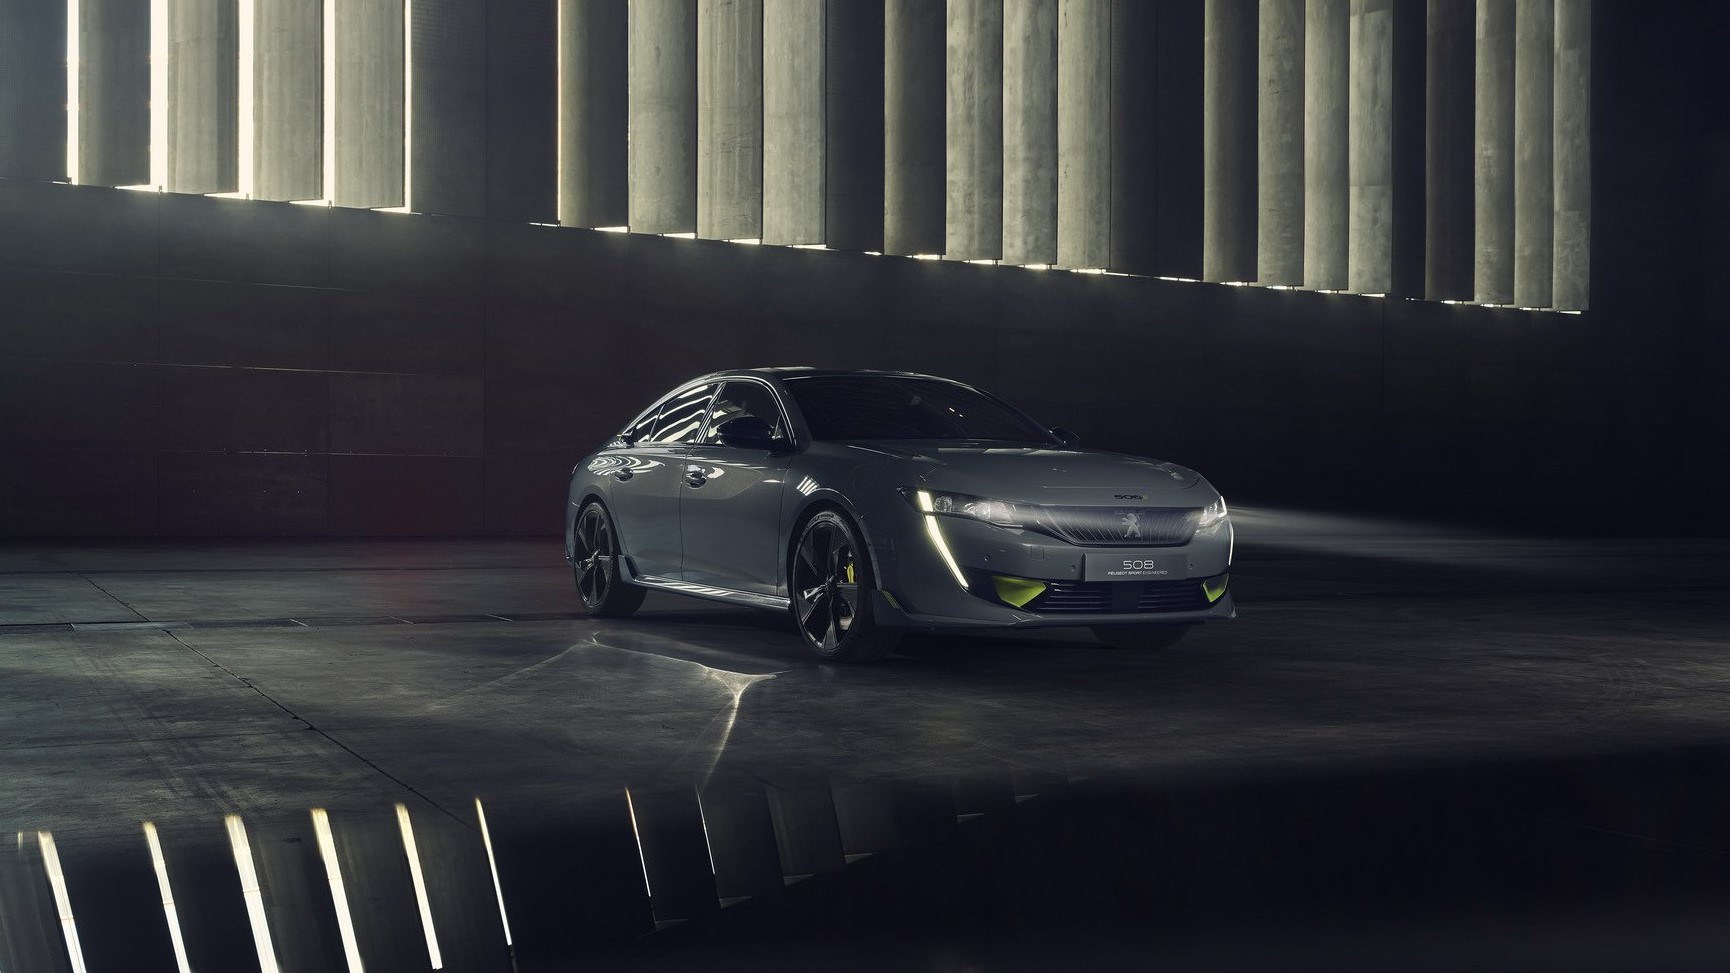 2cccf180-peugeot-508-sport-engineered-concept-22